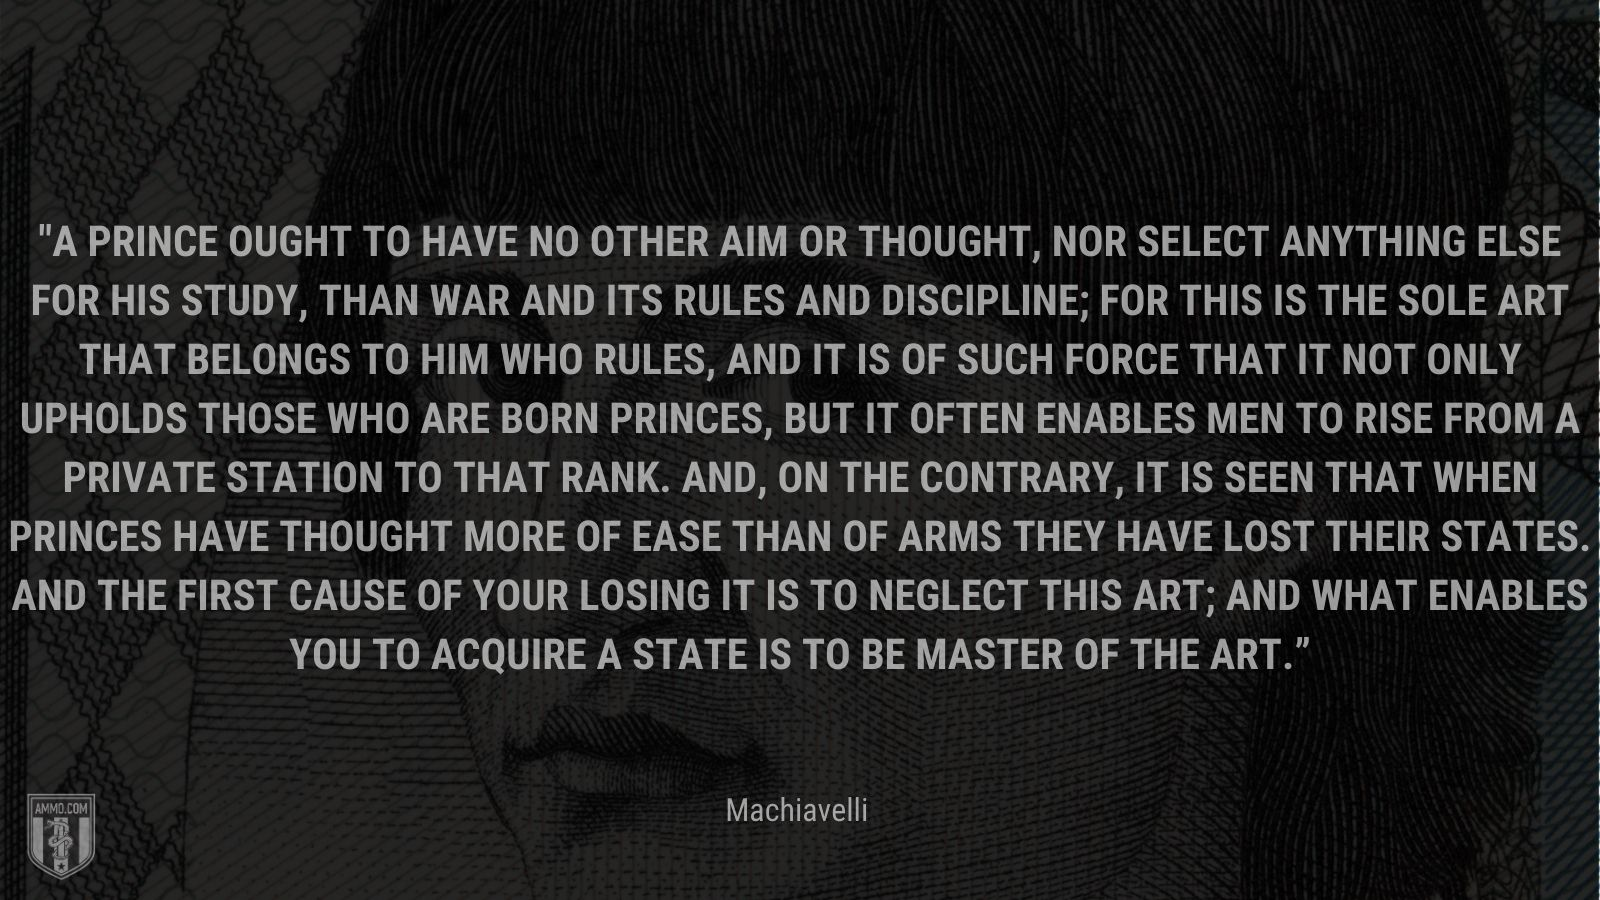 """""""A prince ought to have no other aim or thought, nor select anything else for his study, than war and its rules and discipline; for this is the sole art that belongs to him who rules, and it is of such force that it not only upholds those who are born princes, but it often enables men to rise from a private station to that rank. And, on the contrary, it is seen that when princes have thought more of ease than of arms they have lost their states. And the first cause of your losing it is to neglect this art; and what enables you to acquire a state is to be master of the art."""" - Machiavelli"""